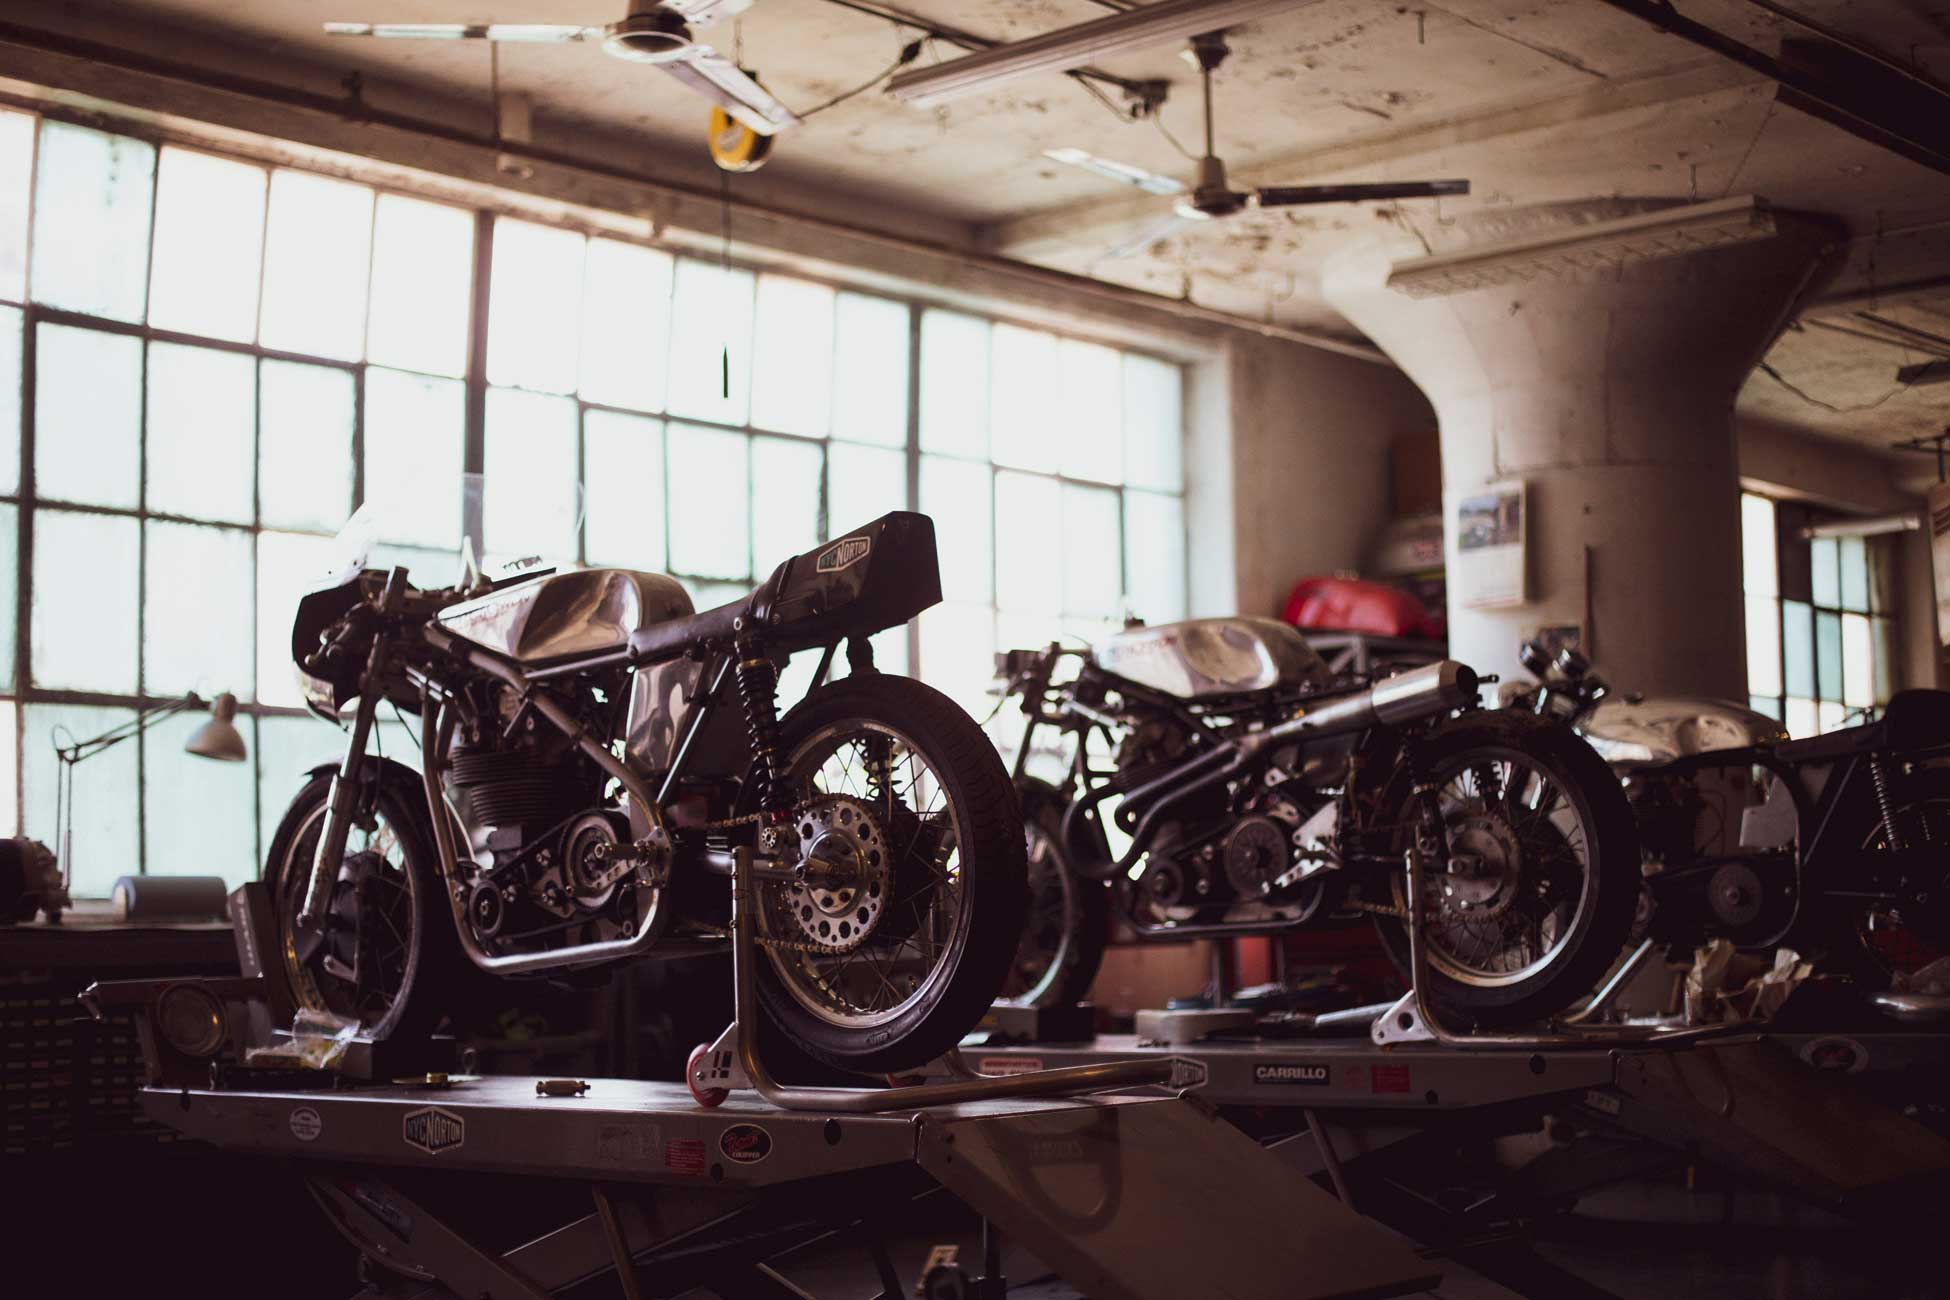 NYC Norton – Classic Norton Motorcycles, built to order